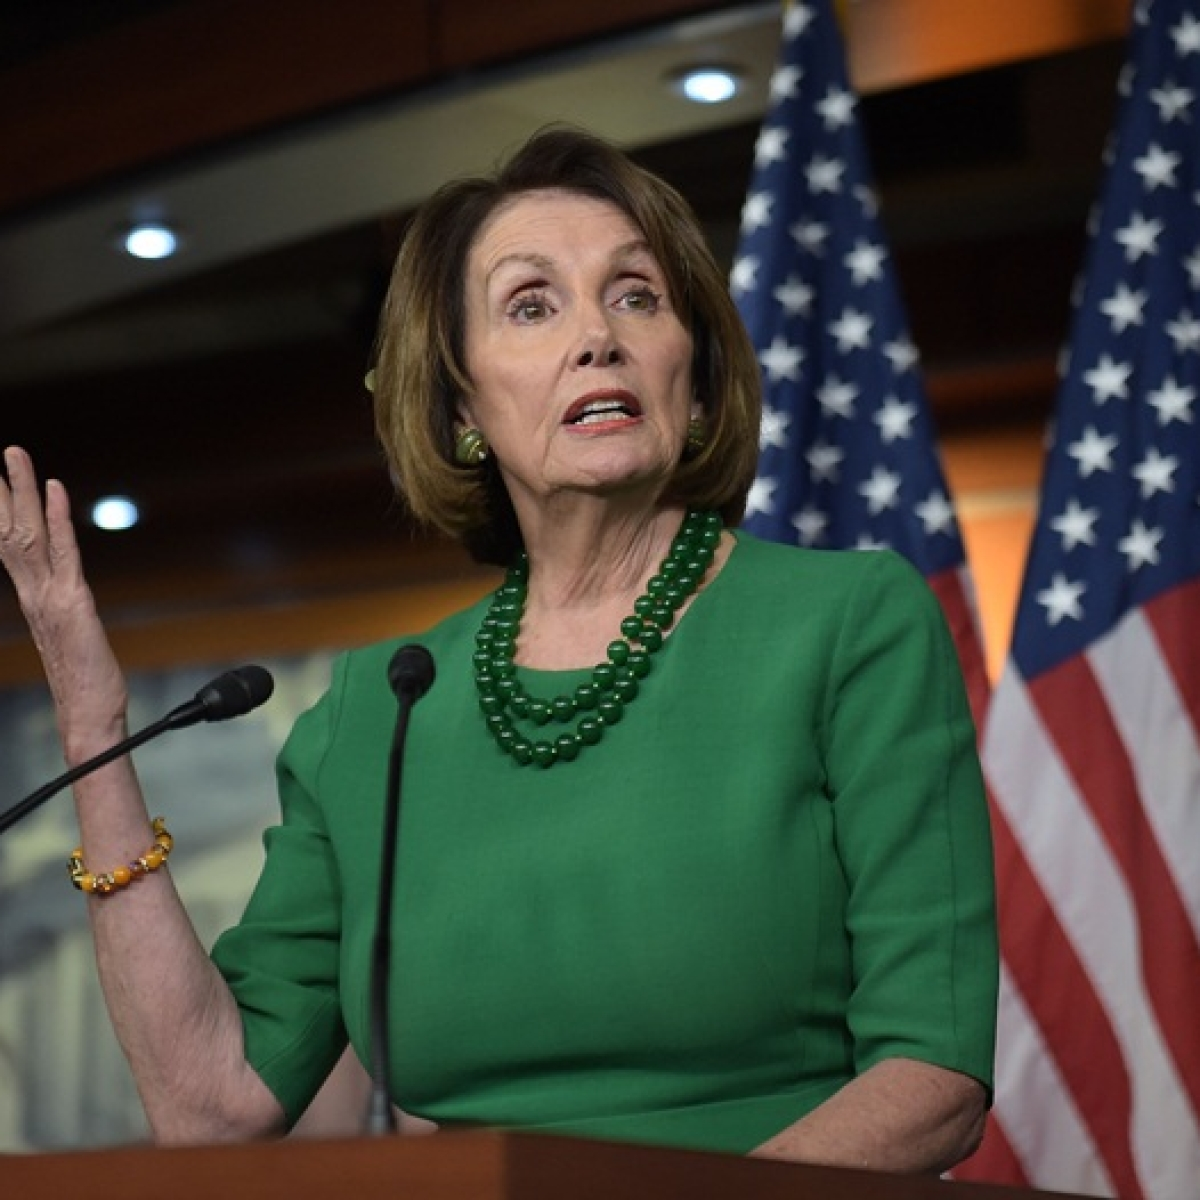 Will not be having a vote at this time: Nancy Pelosi on Donald Trump's impeachment inquiry